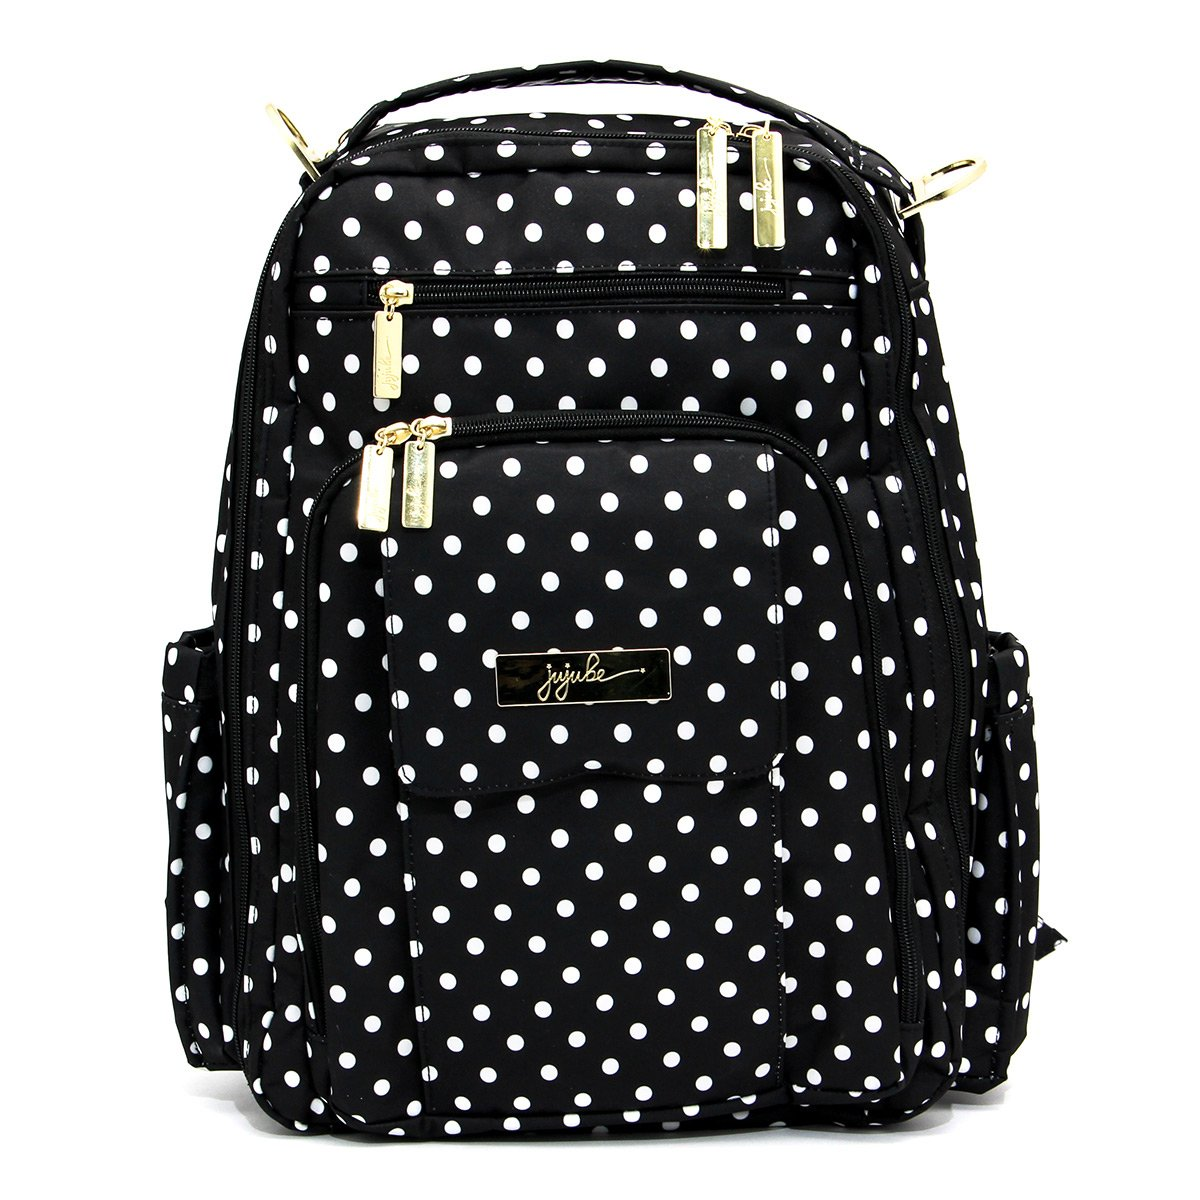 JuJuBe Be Right Back Multi-Functional Structured Backpack/Diaper Bag, Legacy Collection - The Duchess - Black with White Polka Dots by JuJuBe (Image #1)